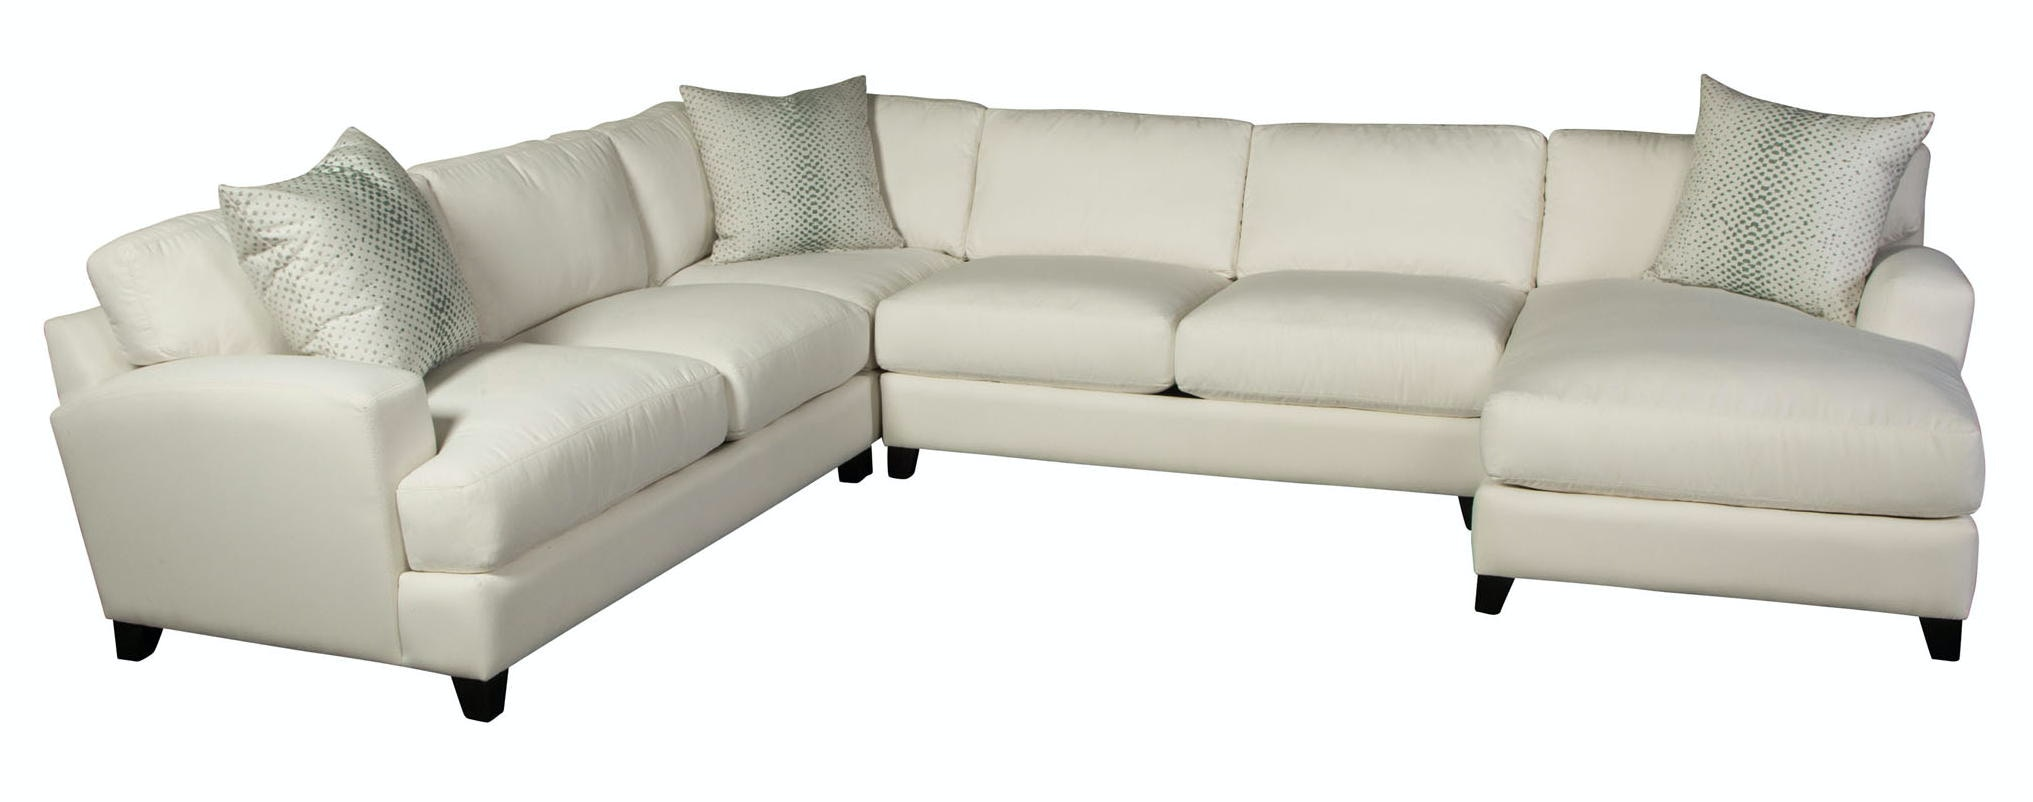 Jonathan Louis International Clarence Sectional 133 Sectional